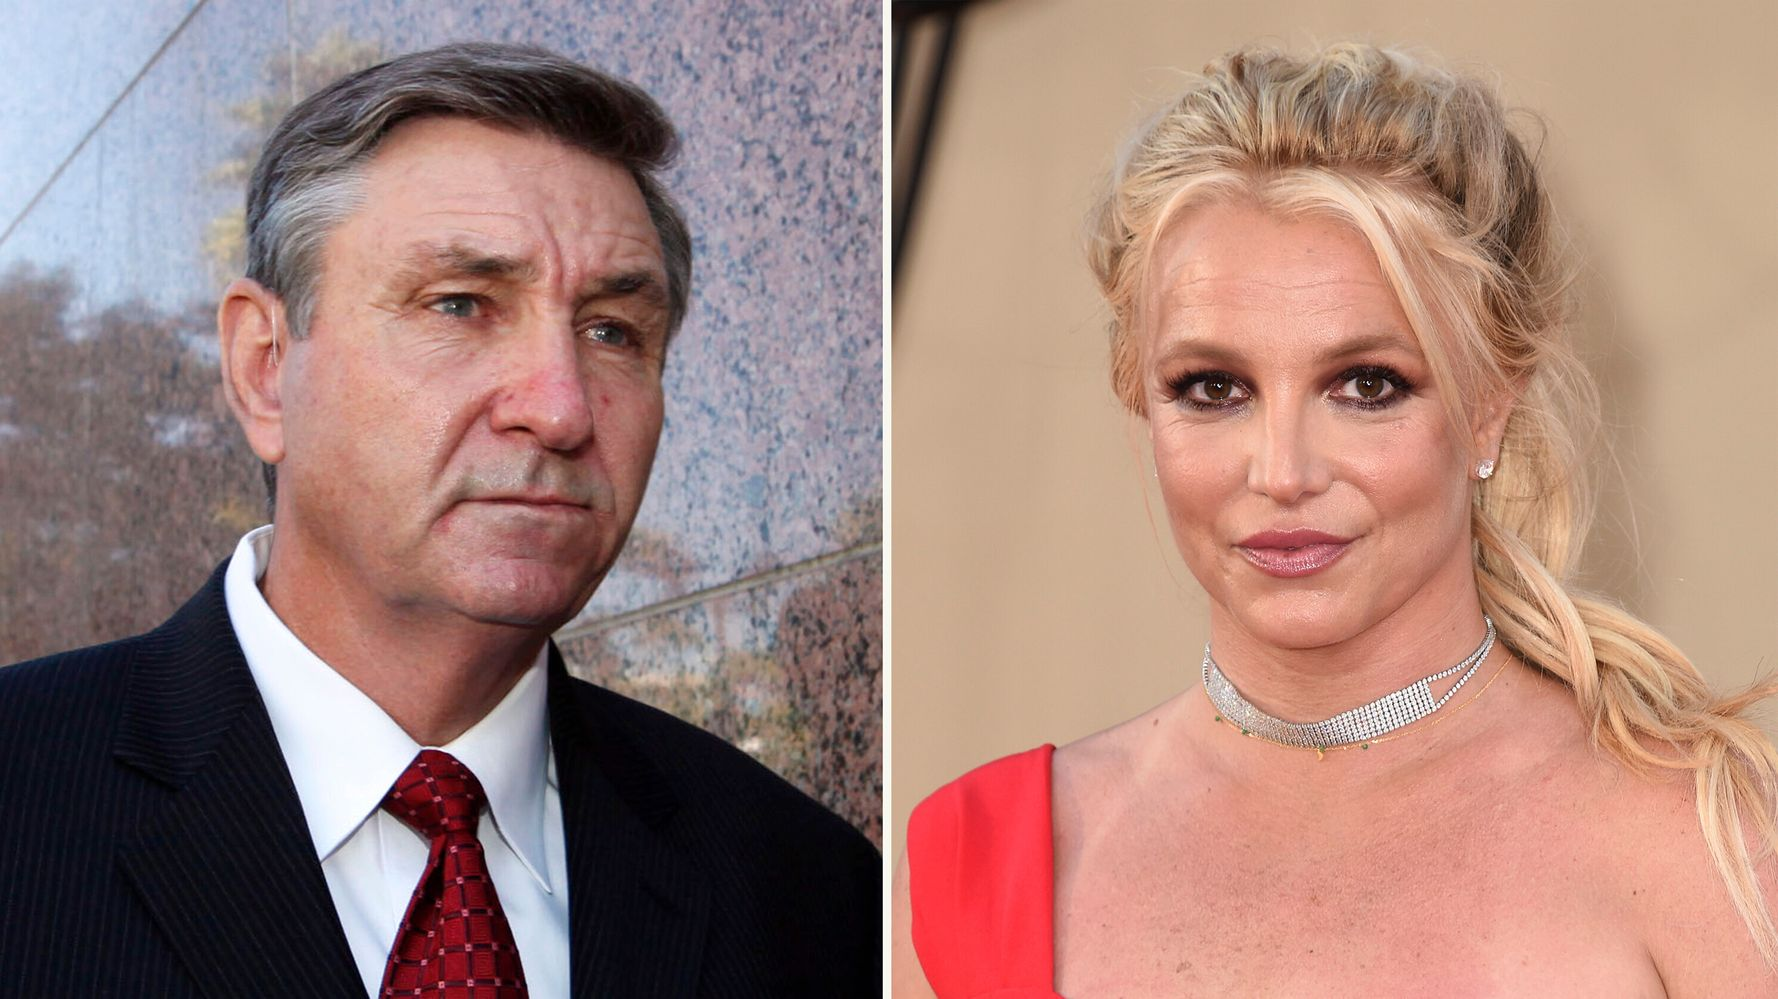 Britney Spears' Father Hired Surveillance That Captured Bedroom Audio: Documentary